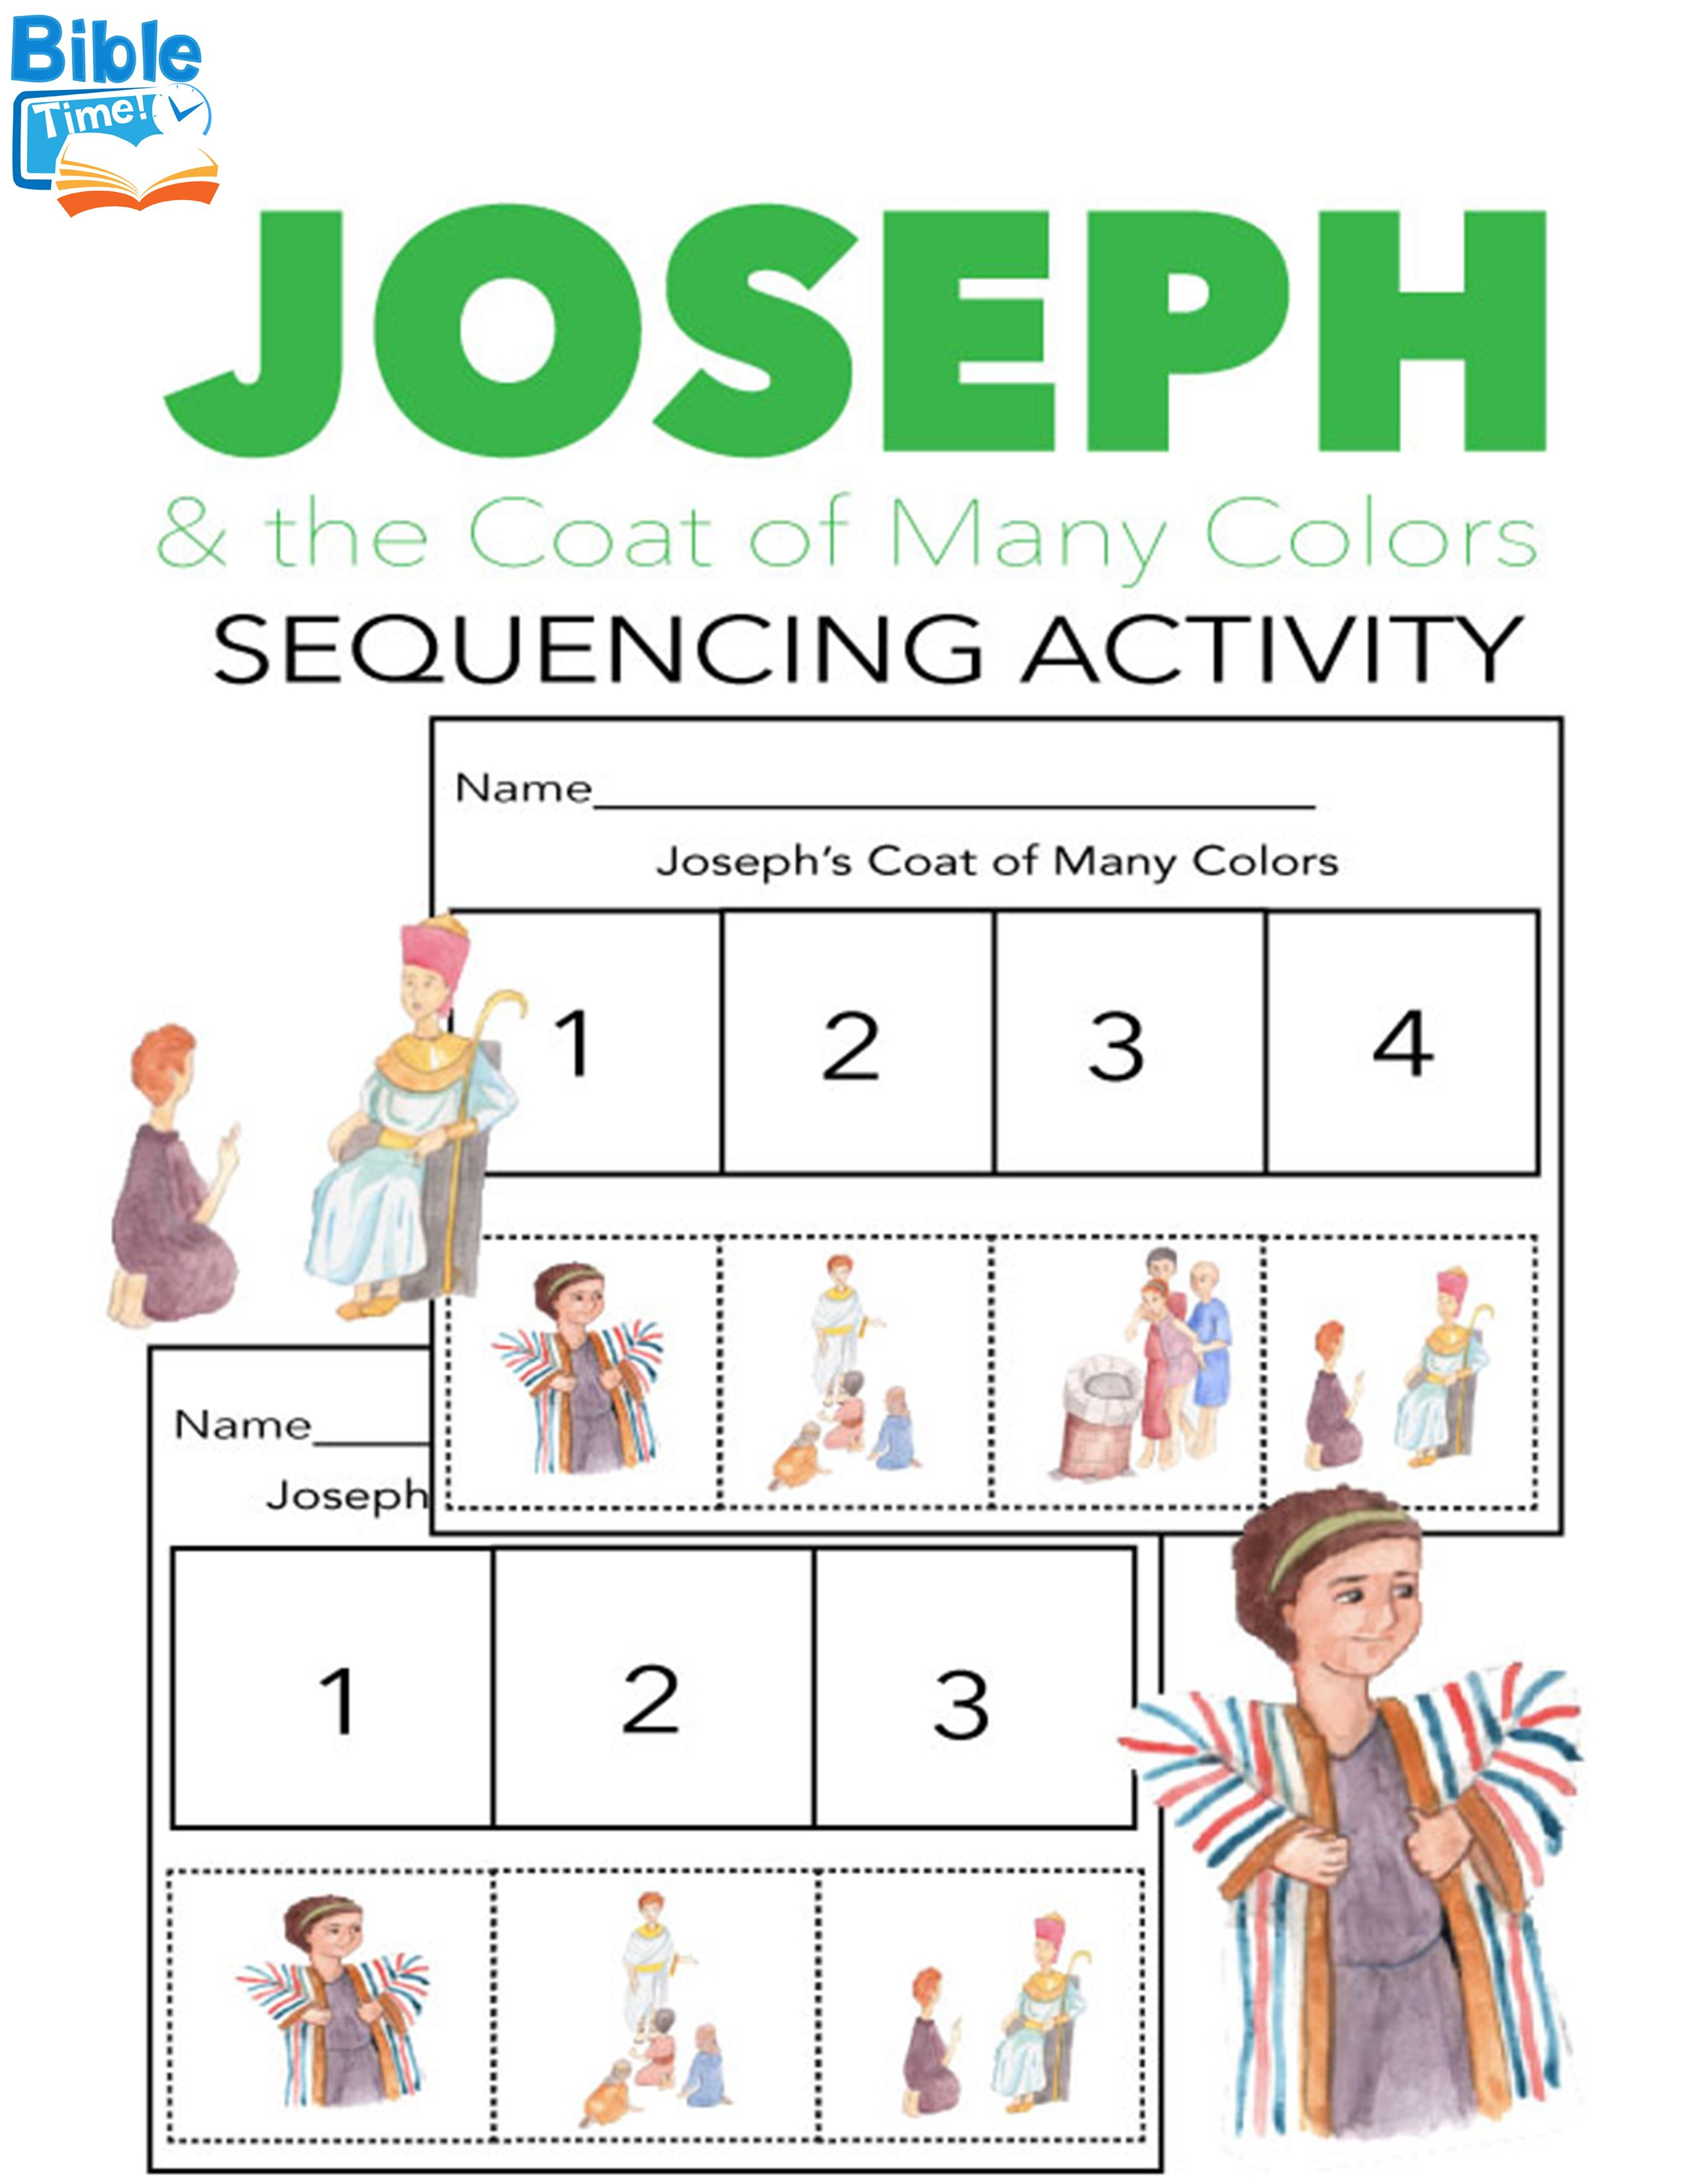 The Bible Story Of Joseph Sequencing Activity This Kids